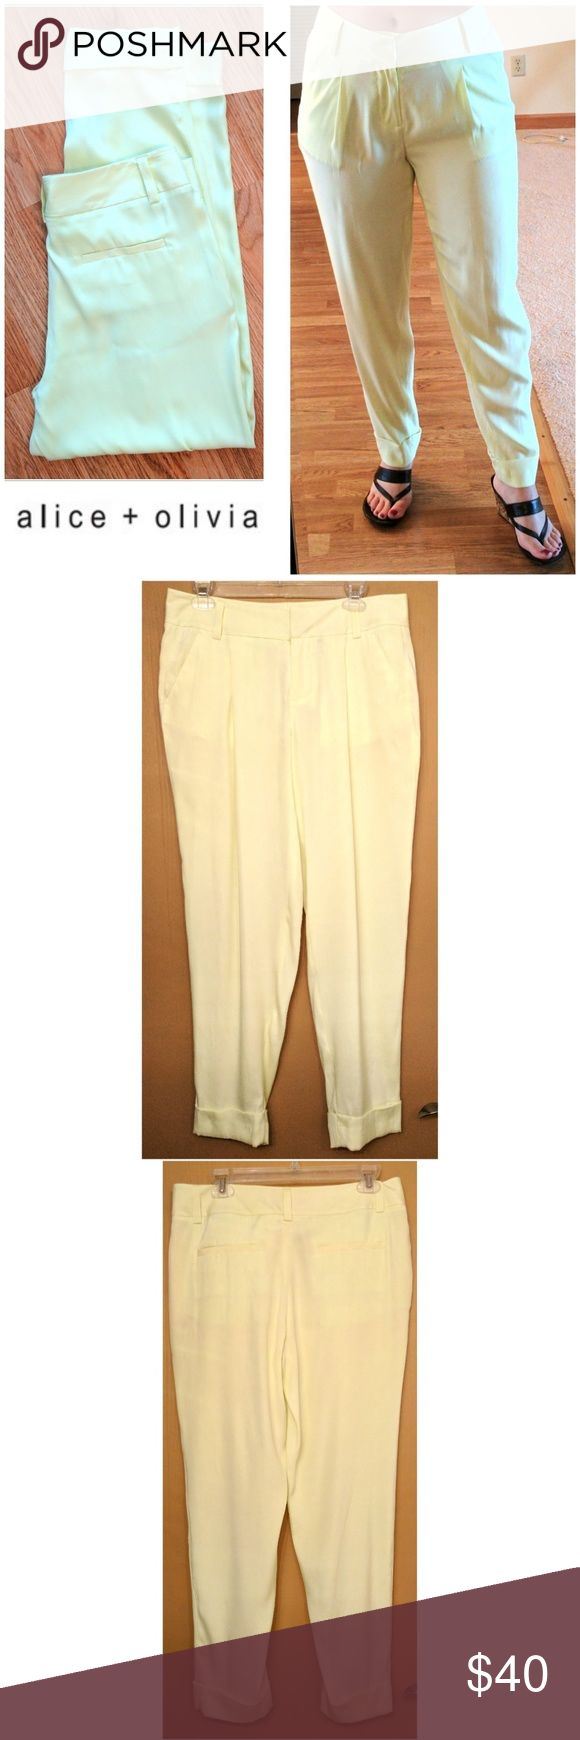 """🍋 NEW Alice + Olivia silk ankle lime  pants These awesome Alice + Olivia silk pants are perfect for dressing on any occasion! Lemon-lime soft silk tone with 5% spandex for stretch fit. Zipper and clasp closure, functional front pockets and slit back pockets. decorative folded up pant cuffs, pants are meant to be ankle fit since they are 28"""" but model is 5'2"""" petite. Size 6. Dress up or down with sandals and blouses, sneakers and tees... Possibilities are endless! NWOT UNUSED NO DAMAGES…"""